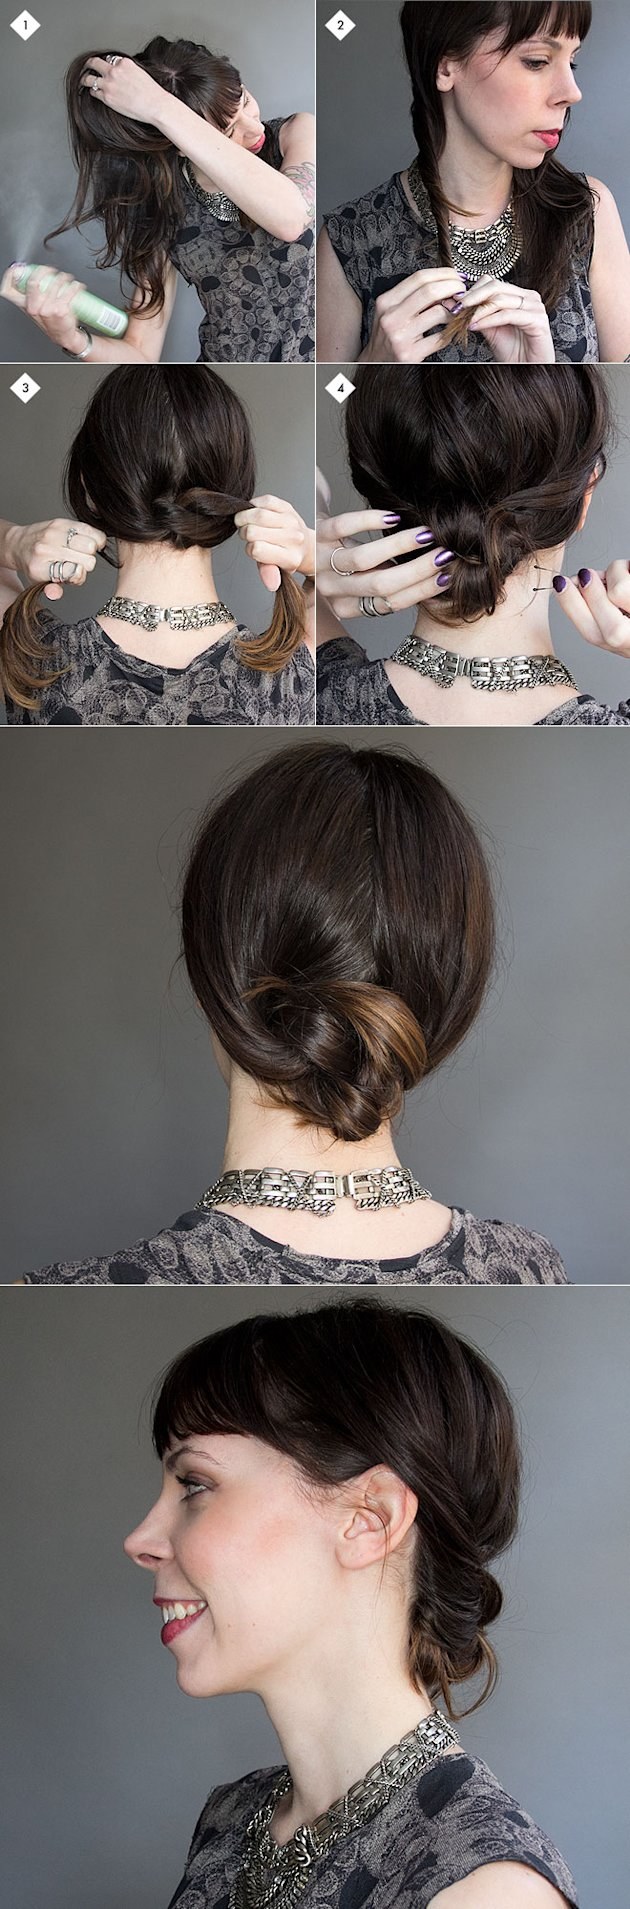 Knotted chignon hairstyle